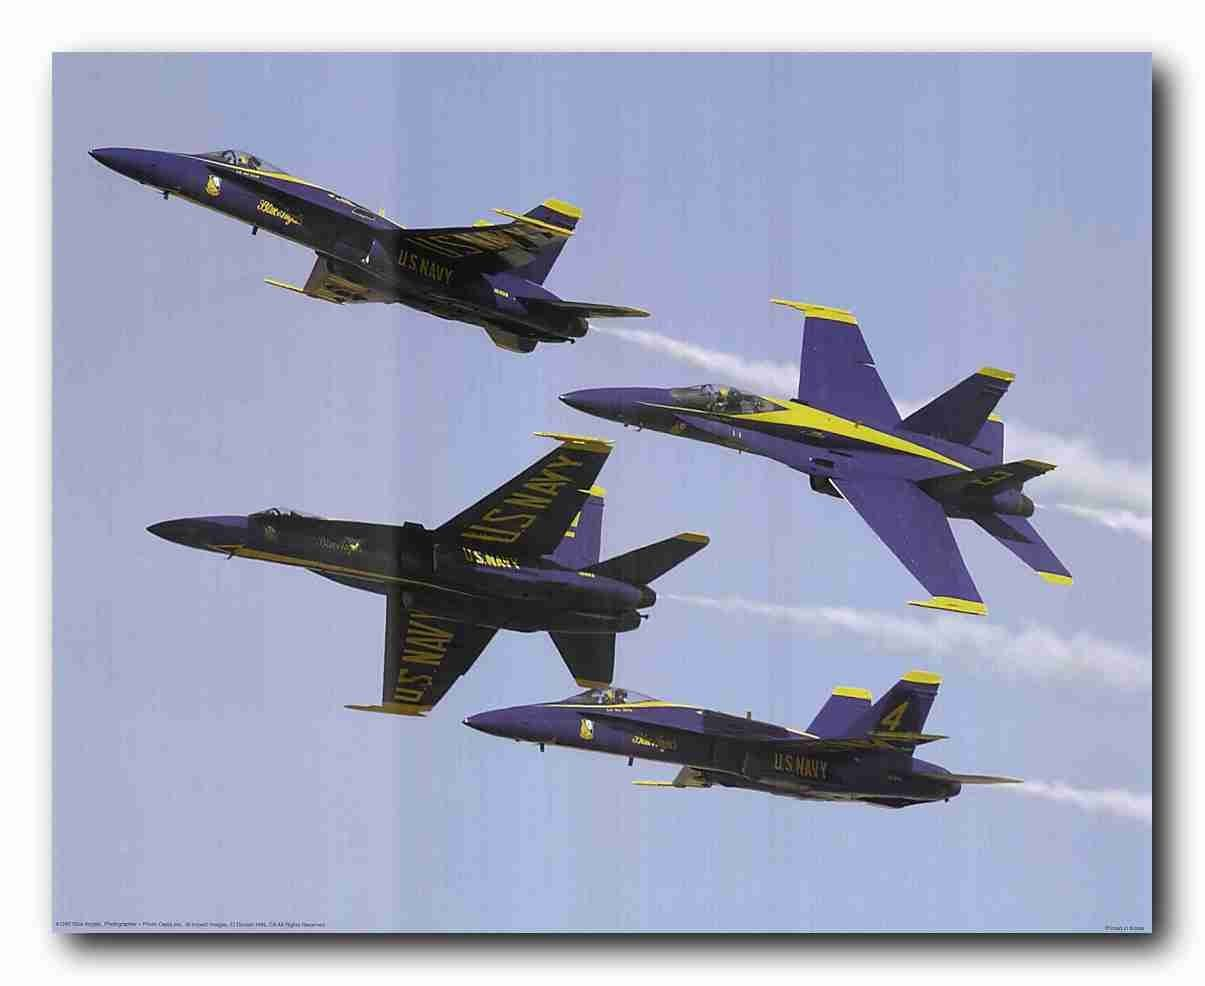 US Blue Angels Military Aircraft Jet Aviation Airplane Wall Decor Art Print Poster (16x20)